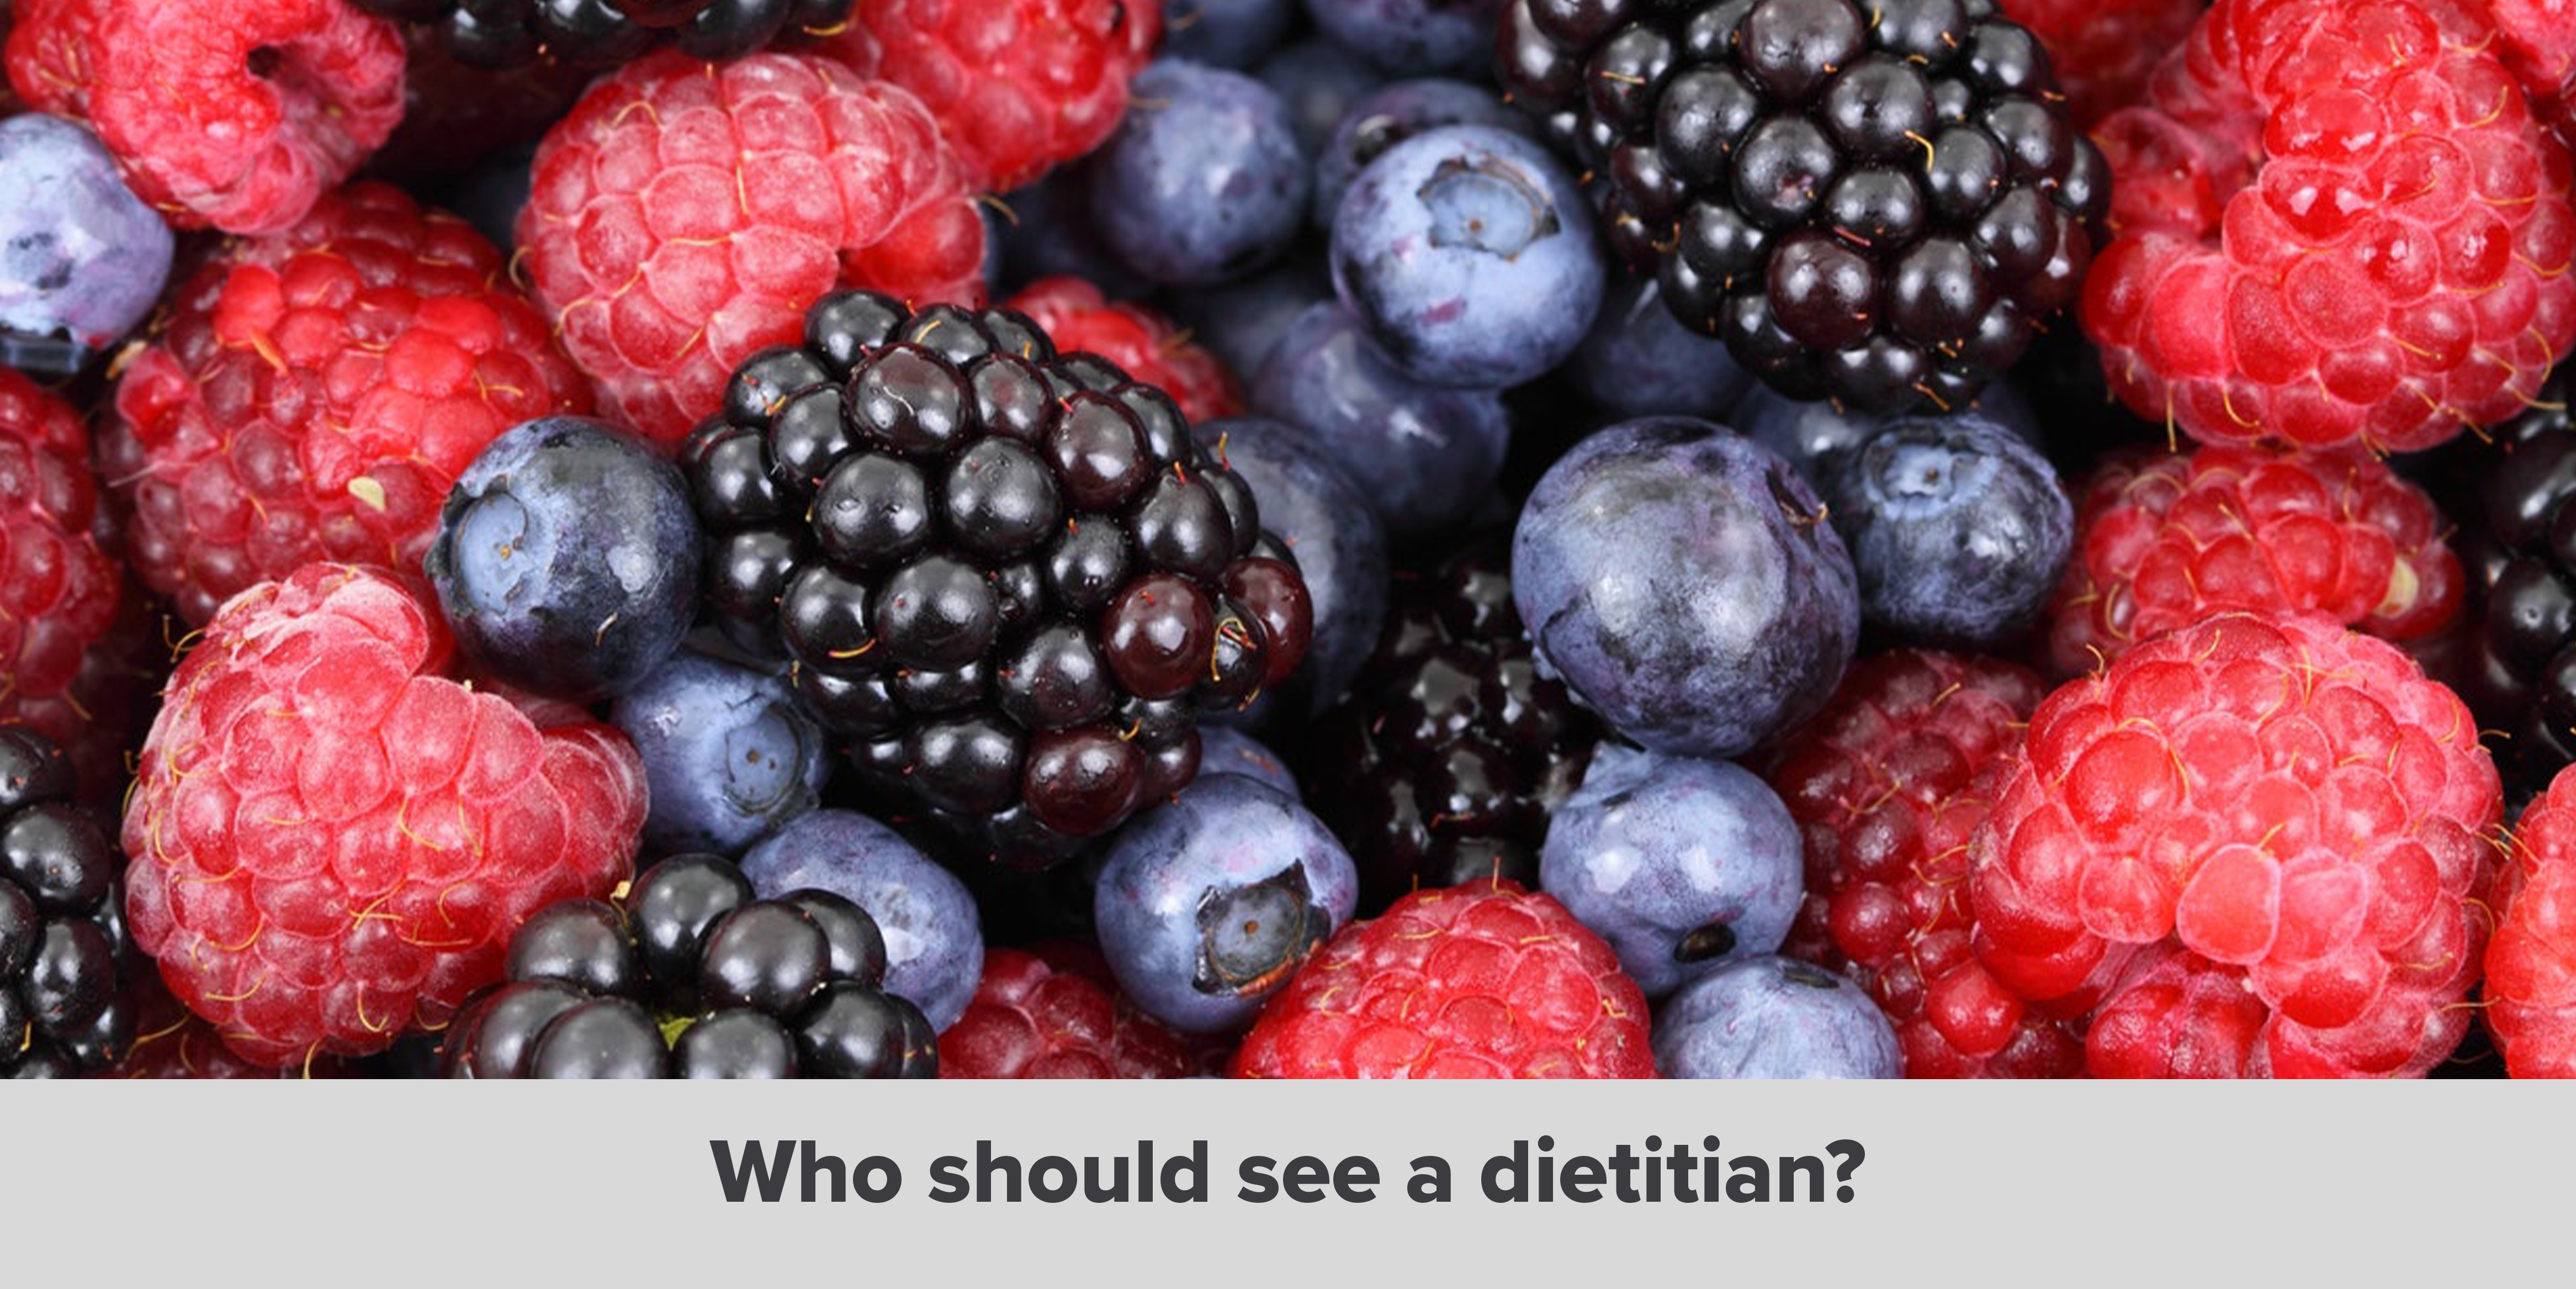 Who should see a dietitian